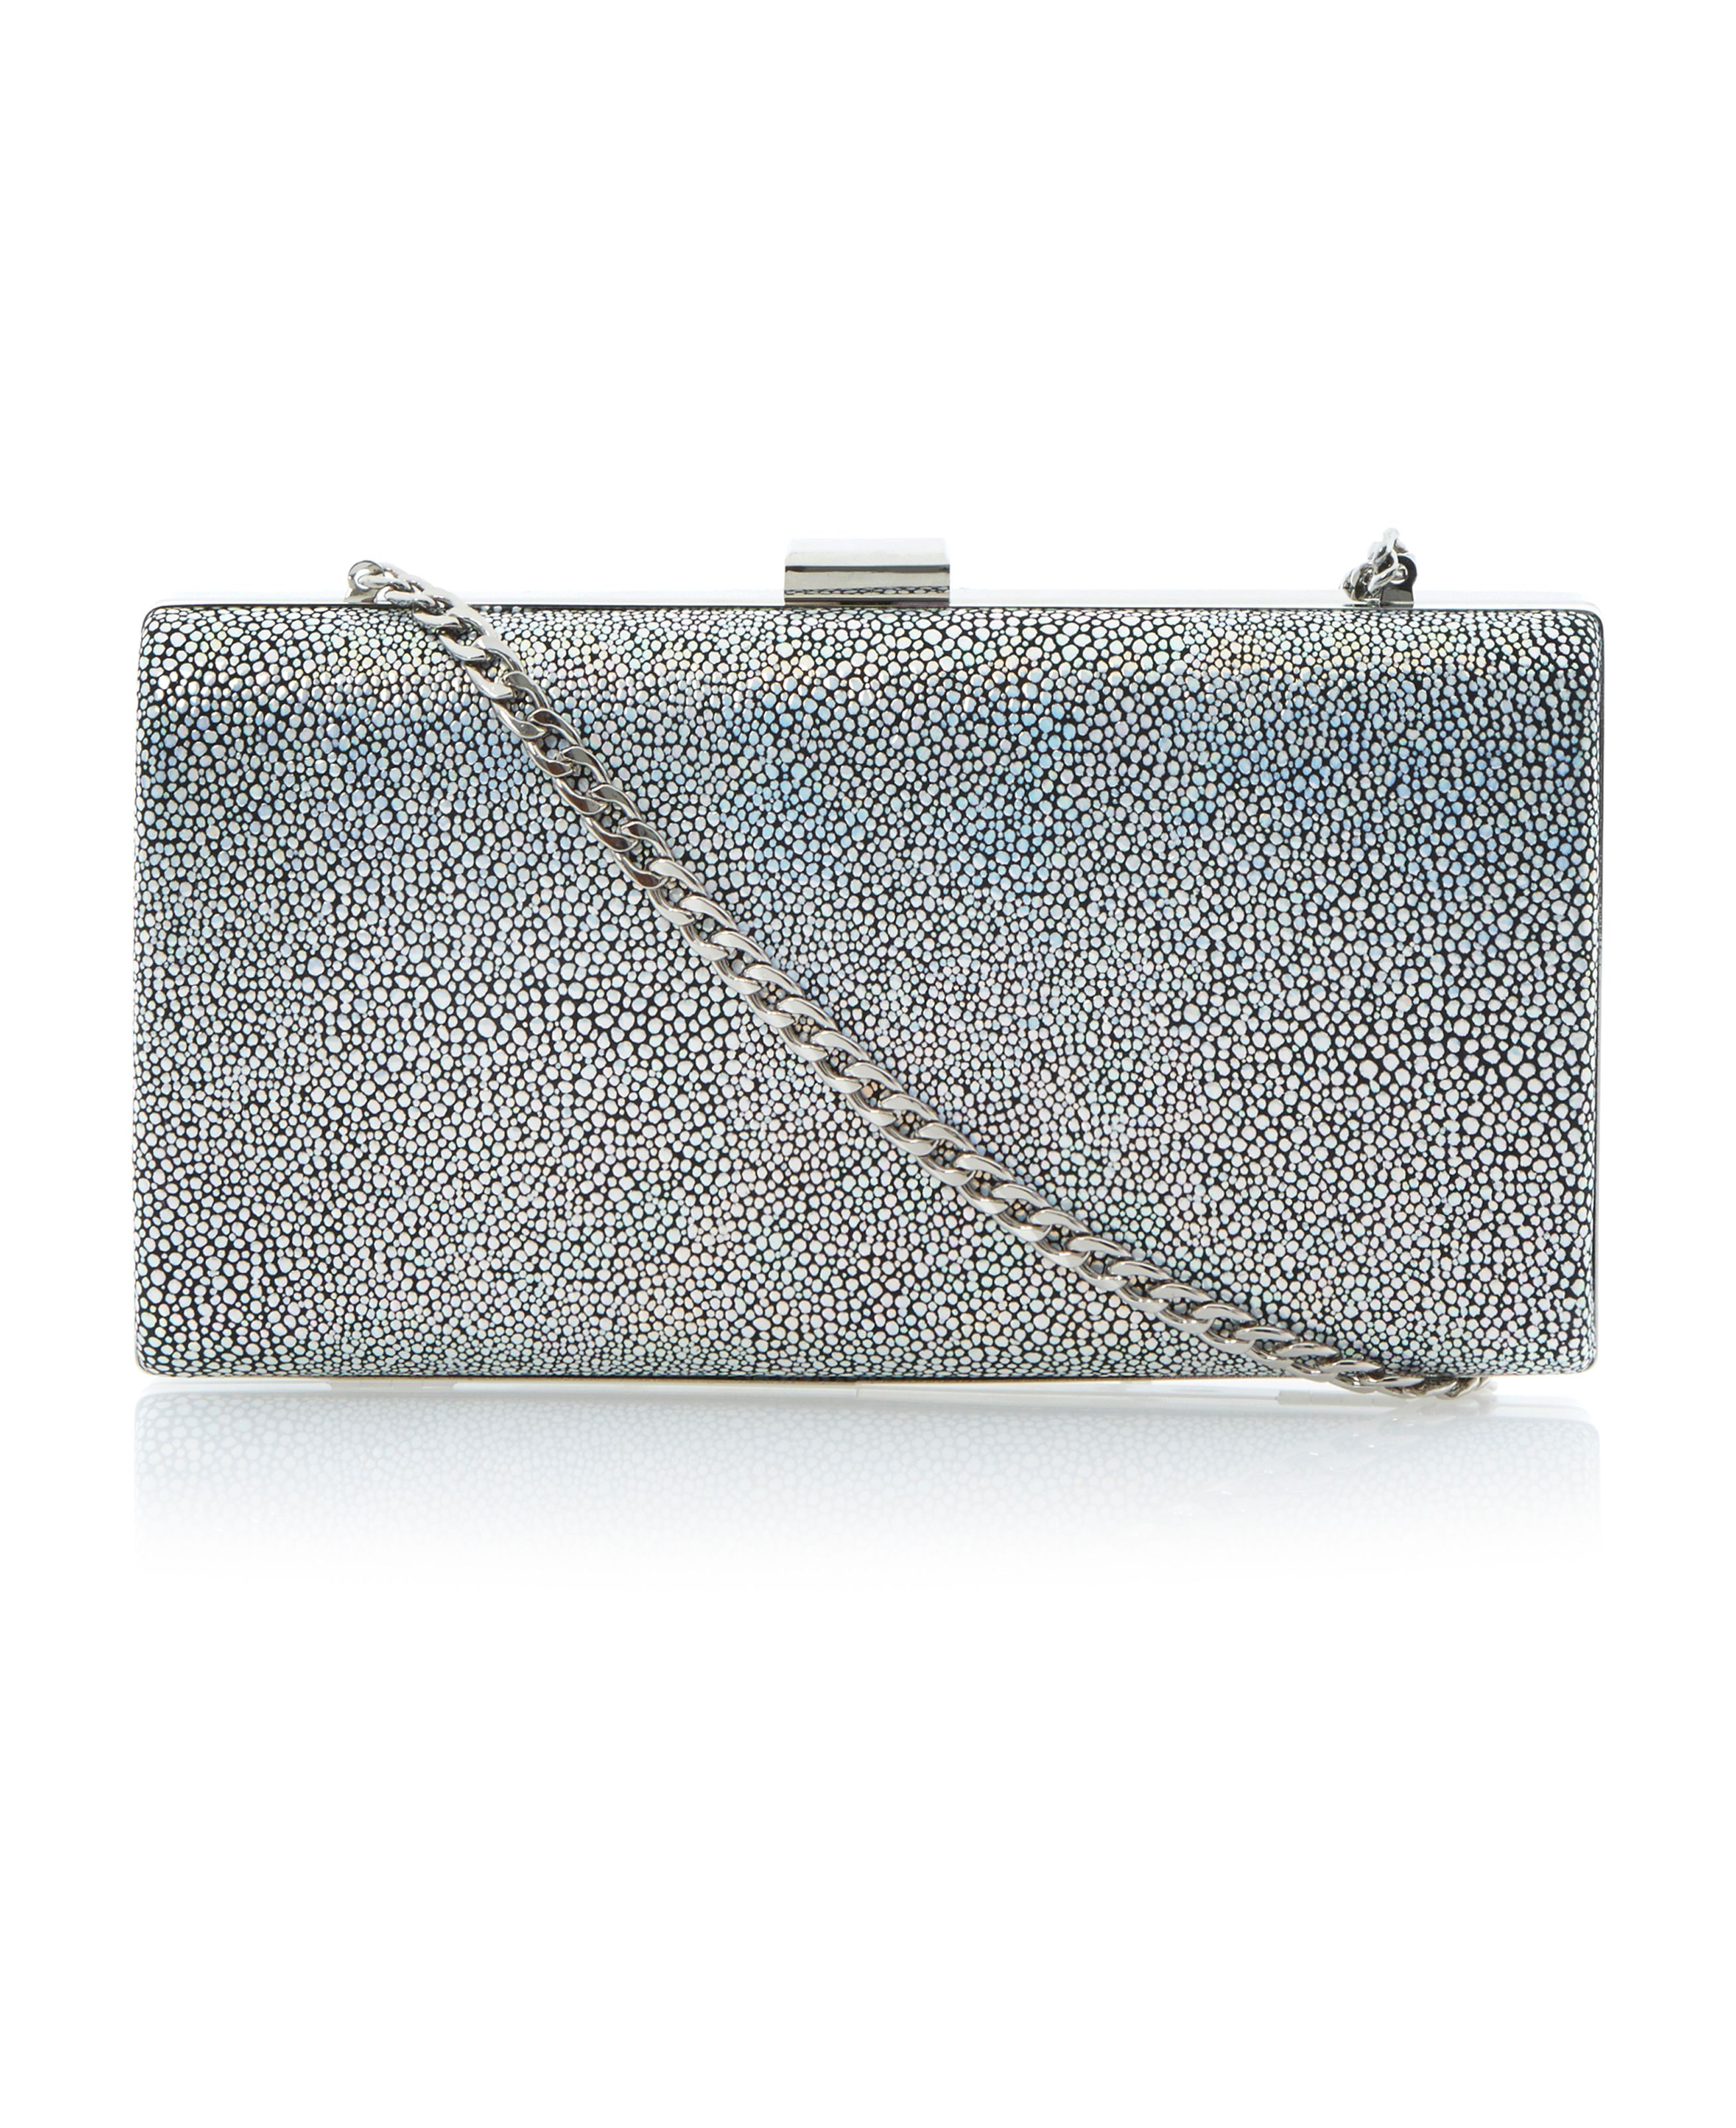 Bingray clutch bag